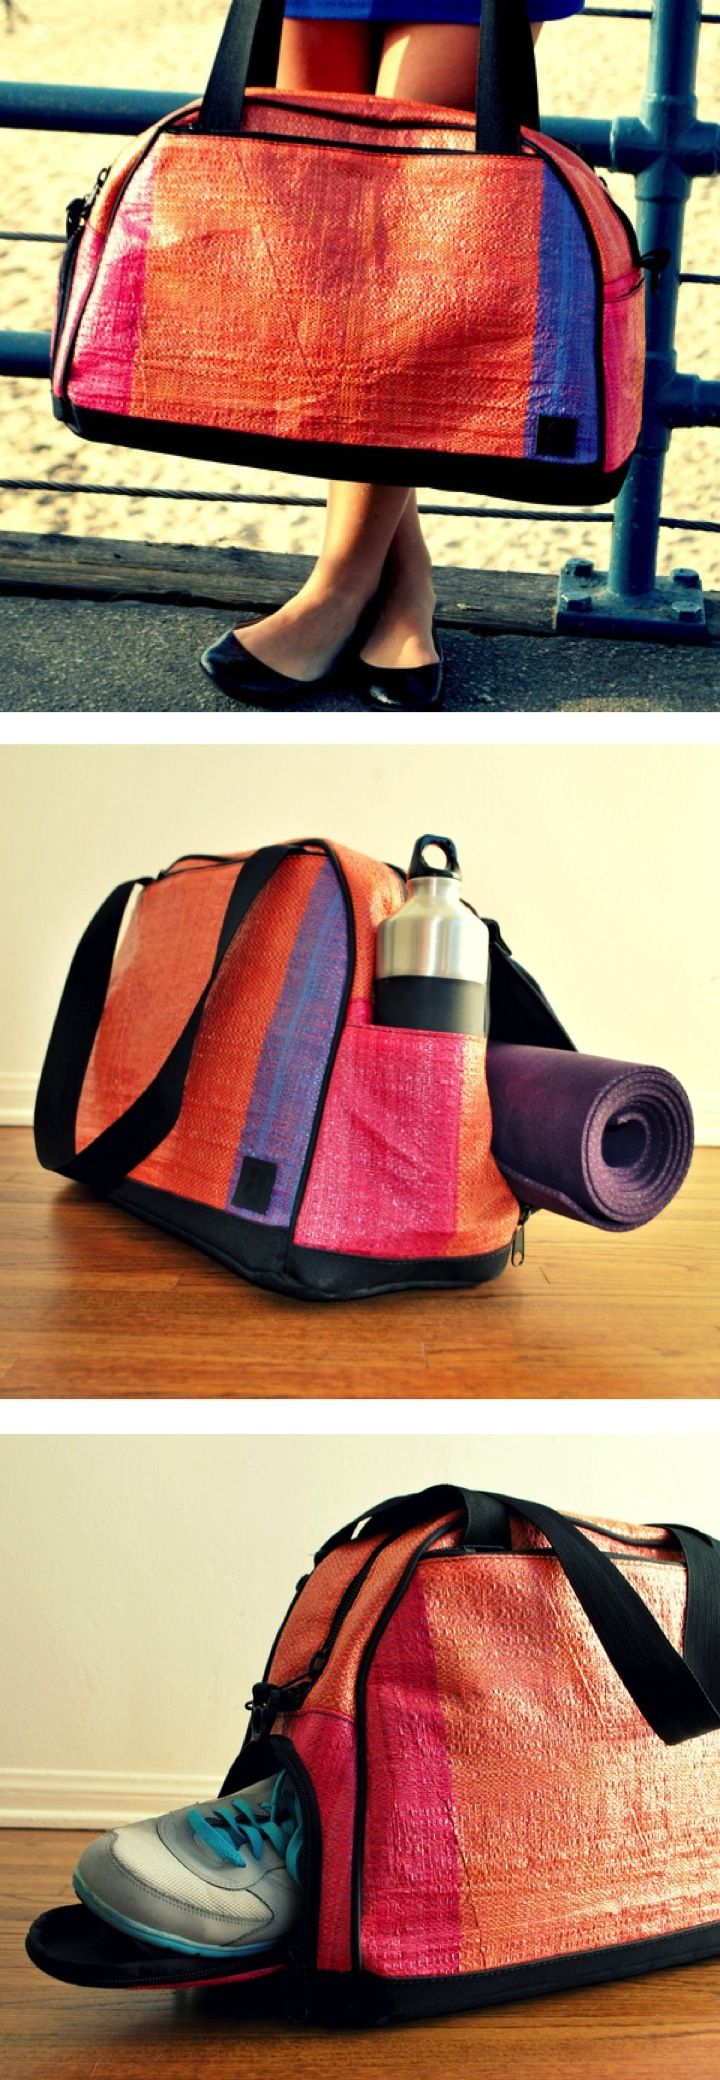 Activyst Gym Bag: Funds go buy gear for female runners in Ethiopia. Water-resistant and contains pockets for shoes, yoga mat, water bottle, electronics, and more. $138.00